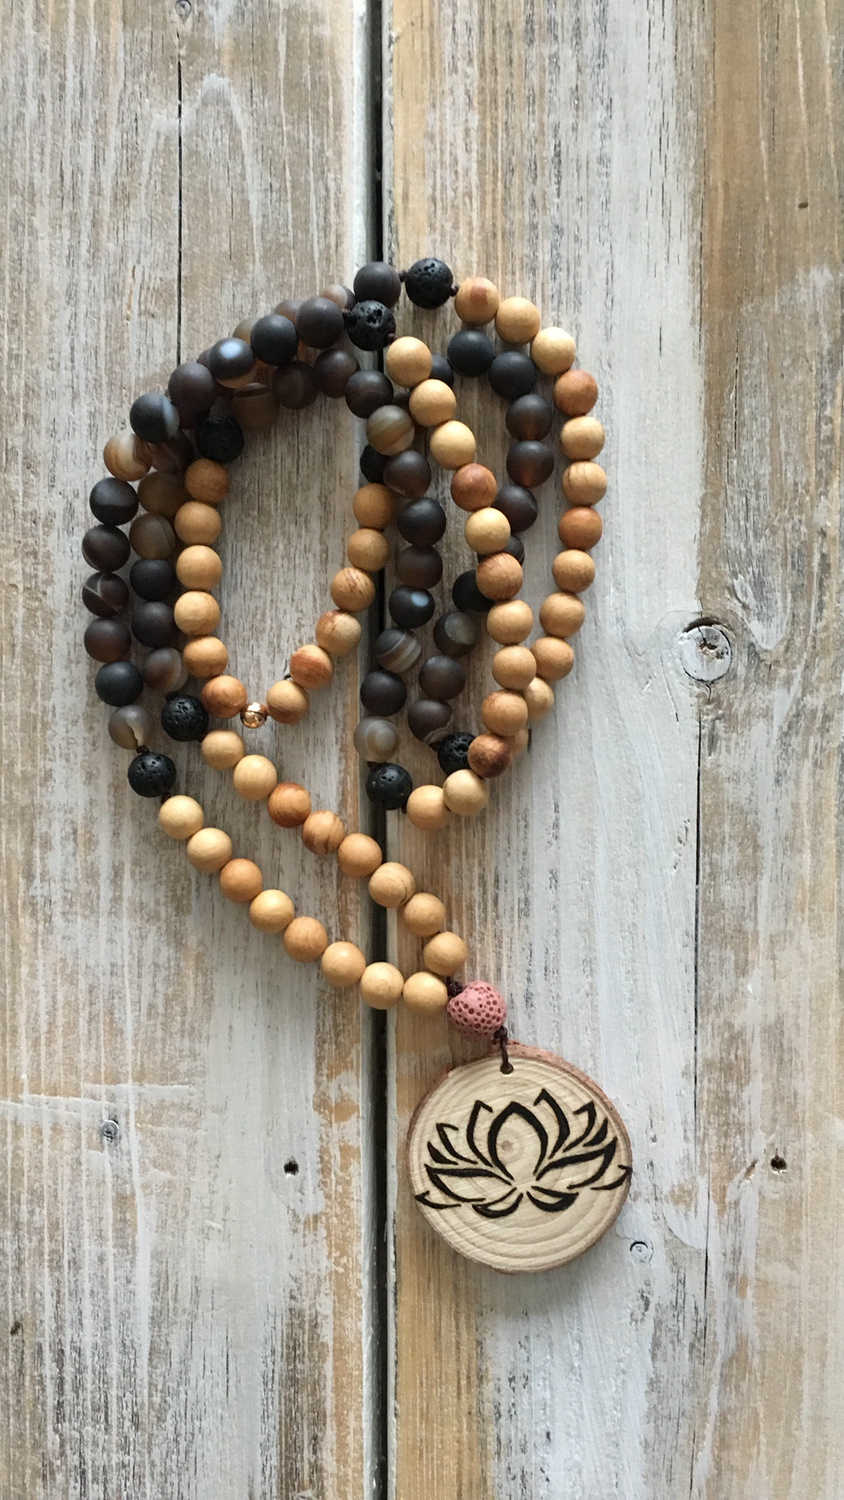 Handmade Wood Burned Lotus Mala